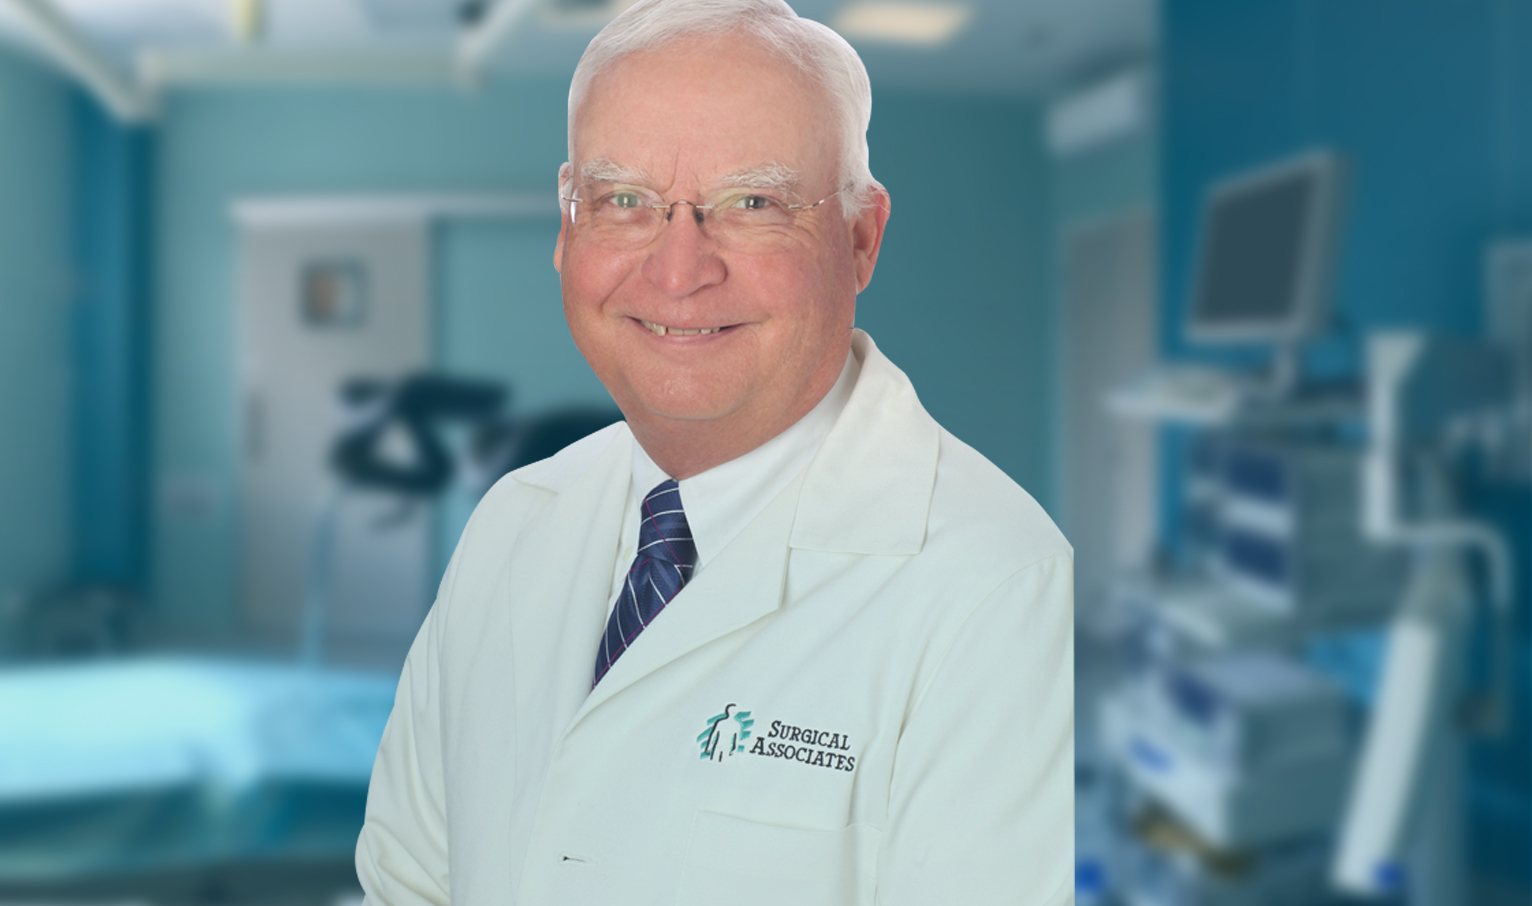 Michael P. Rade, MD, FACS